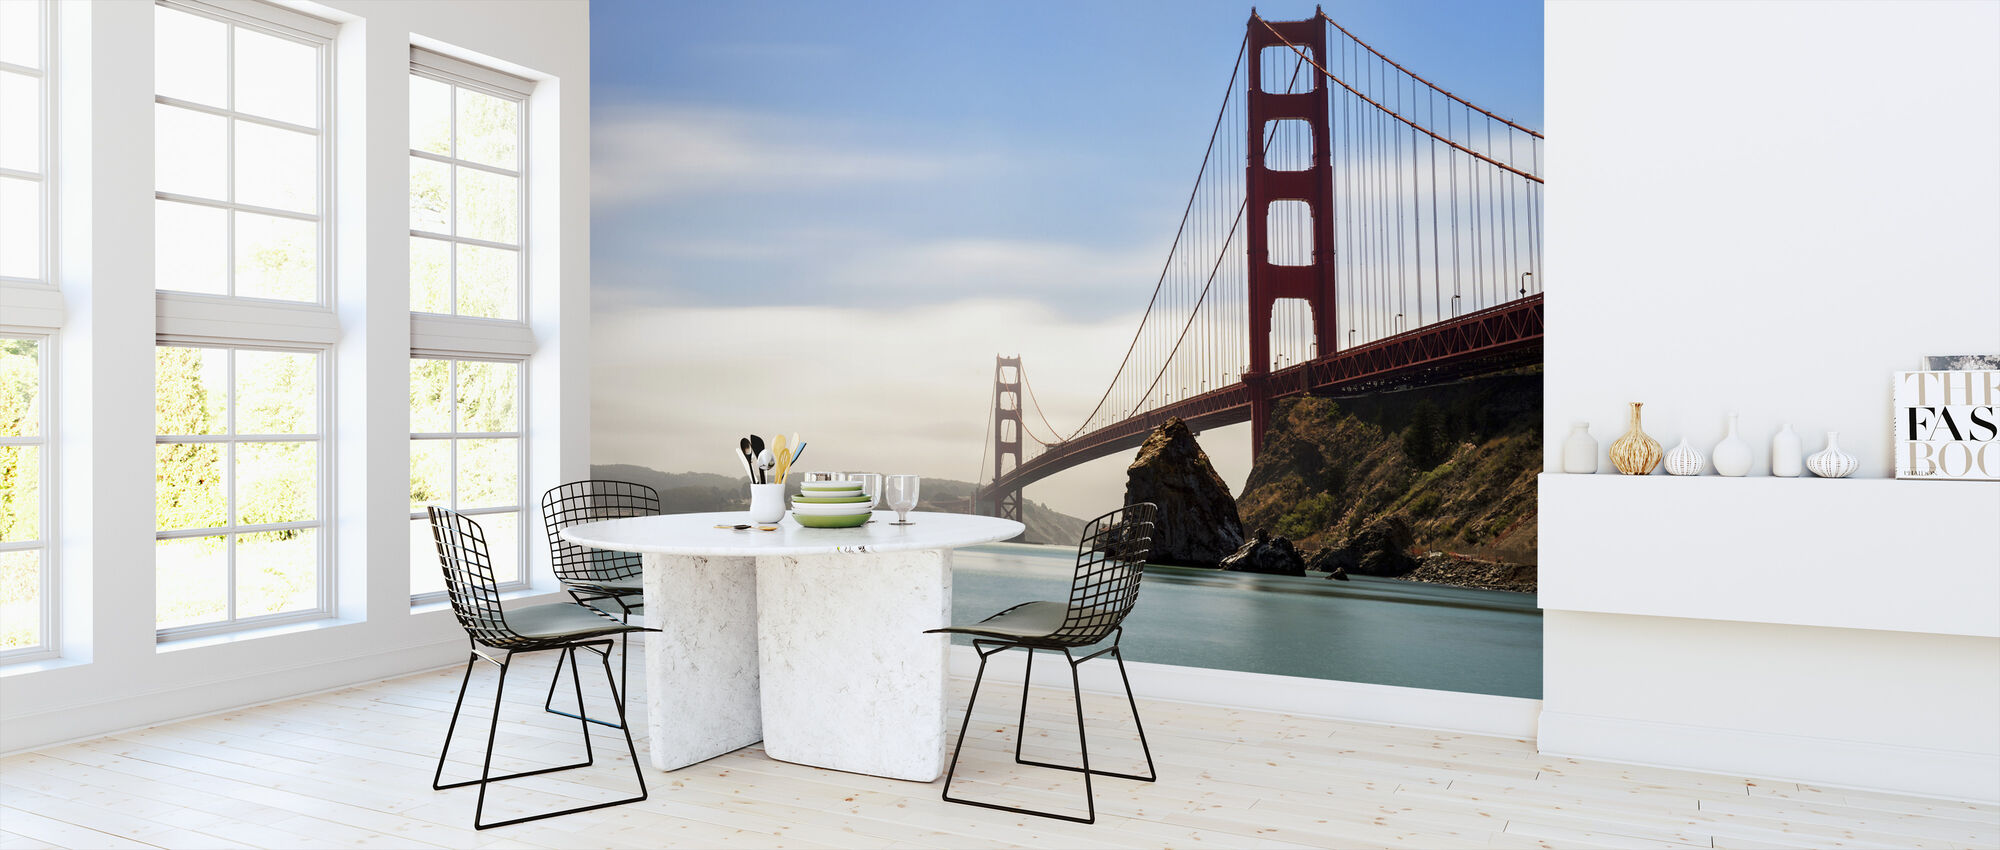 Longtime Exposure of the Golden Gate Bridge - Wallpaper - Kitchen